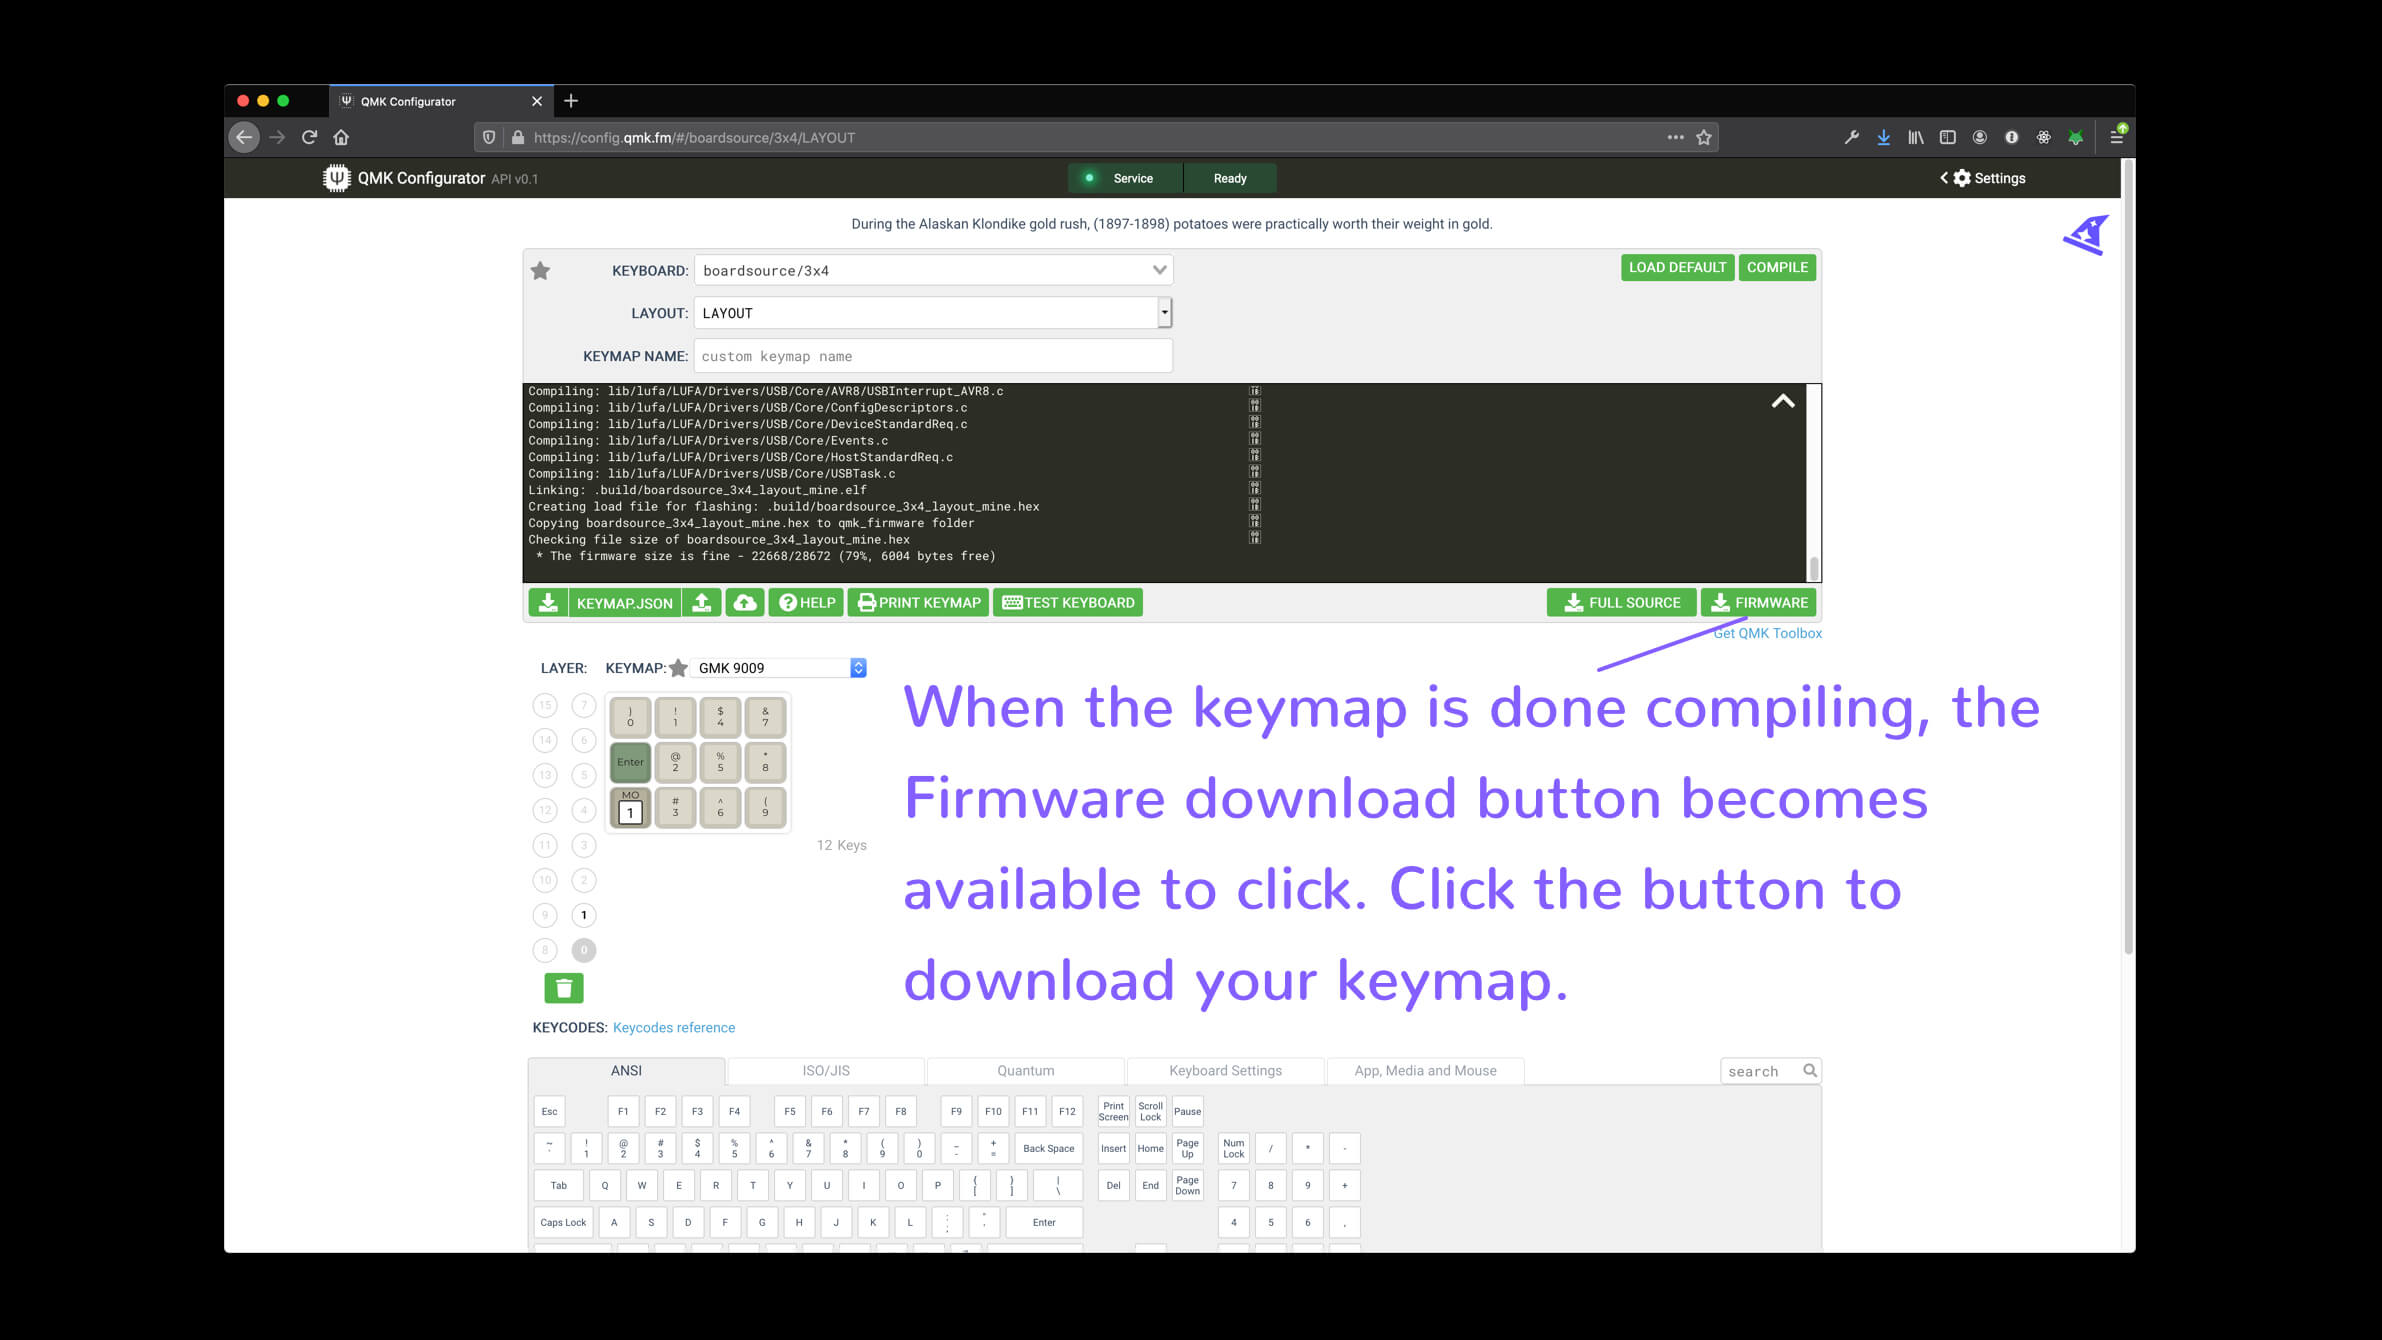 qmk configurator compiling download